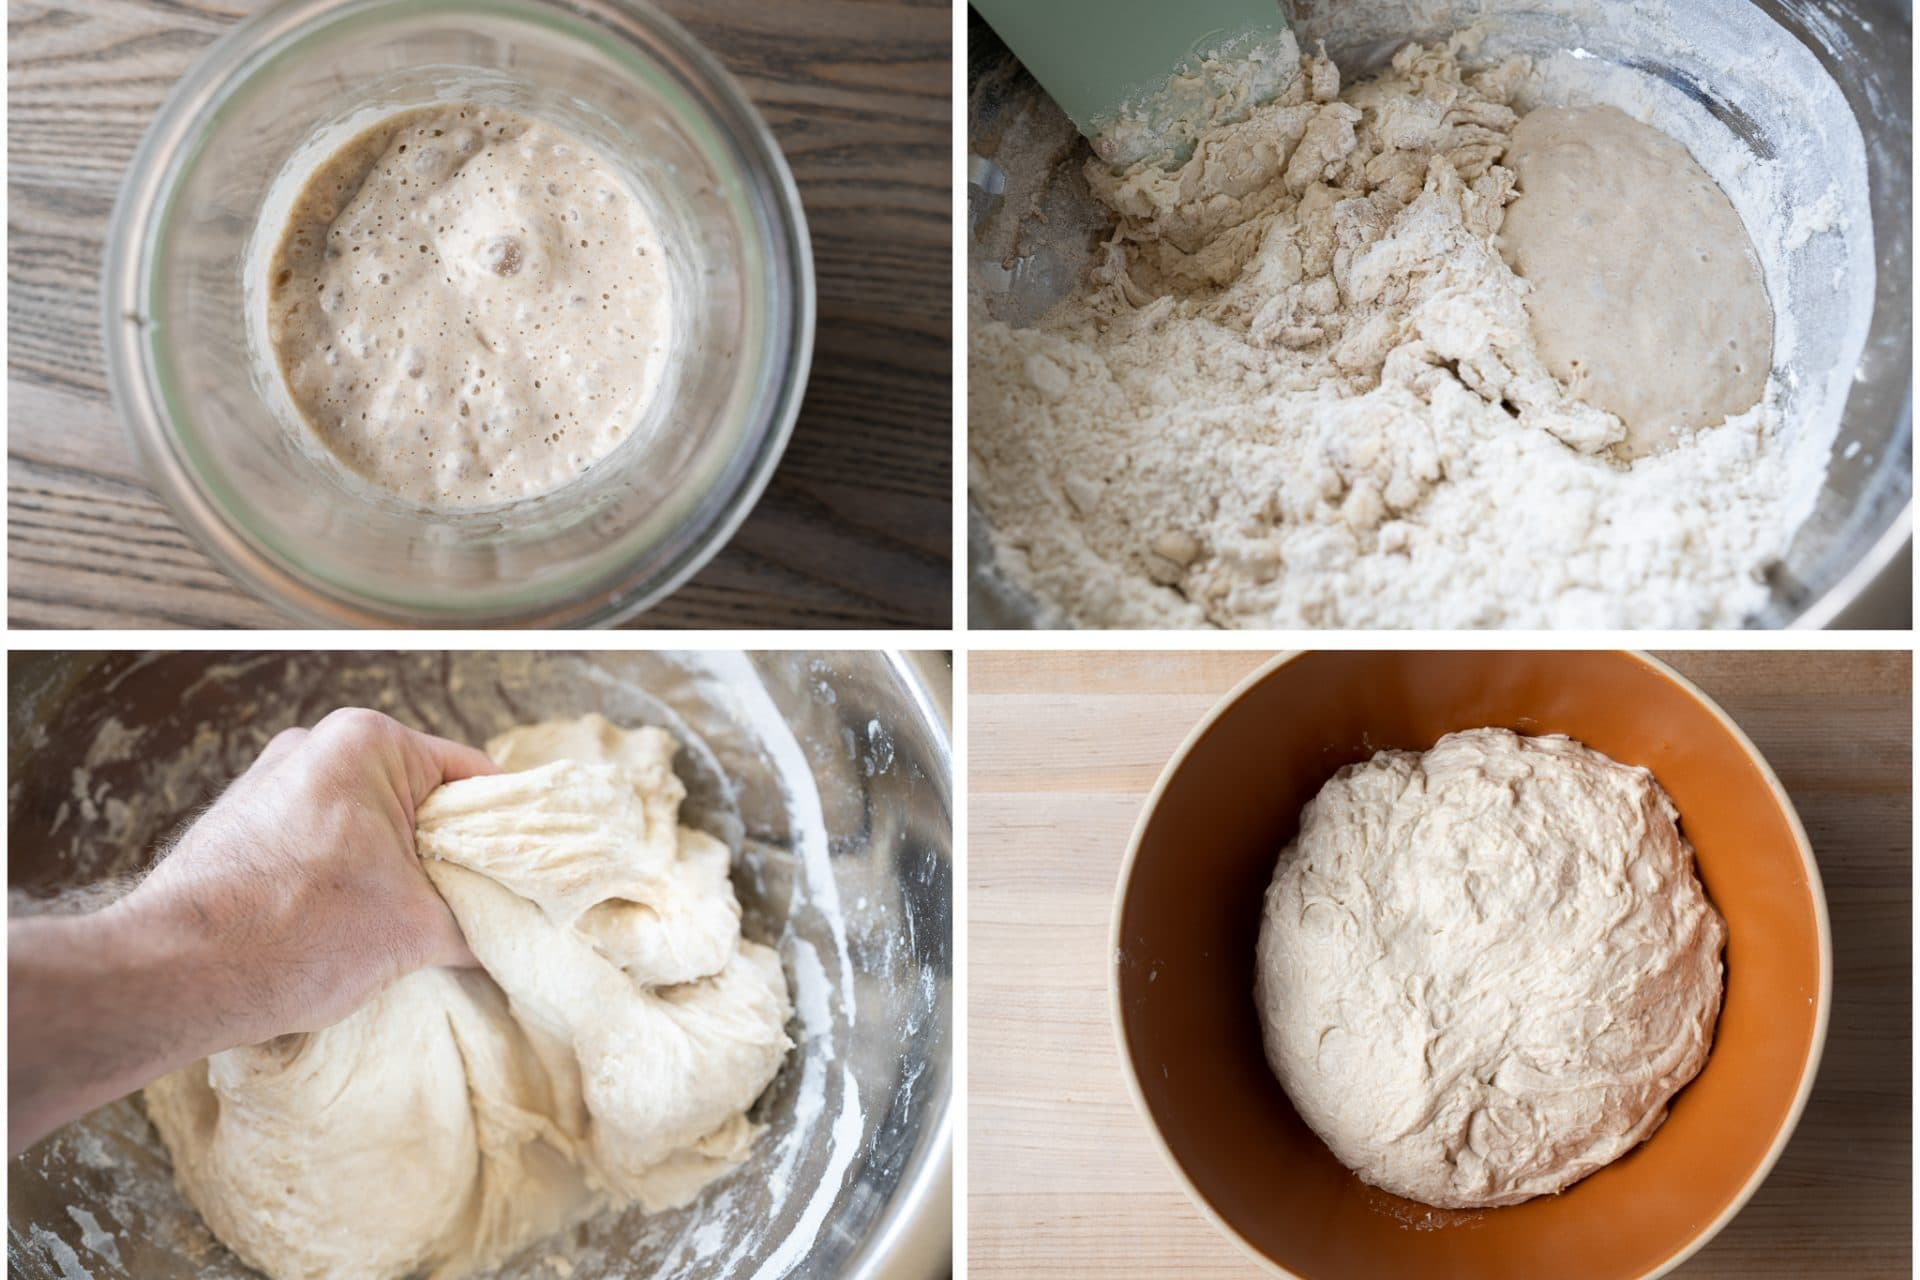 Sourdough starter and mixing